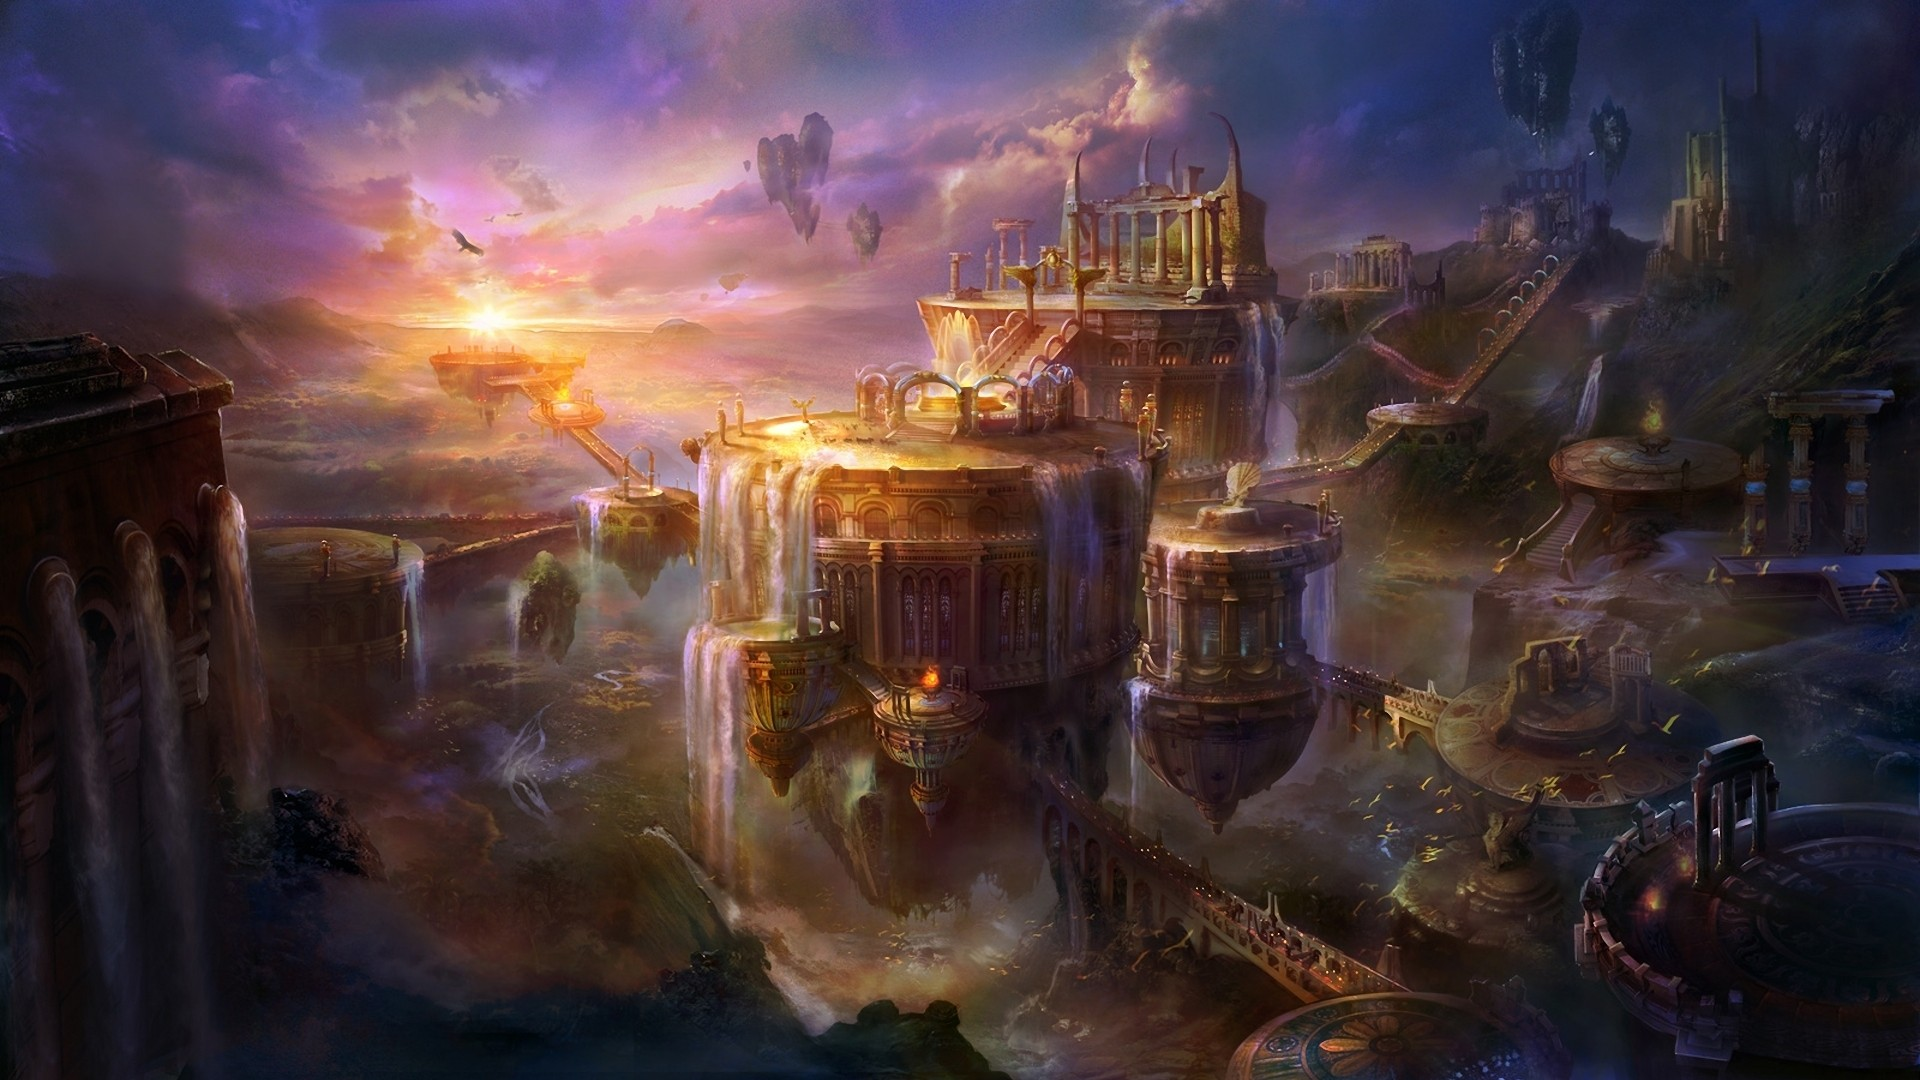 48 fantasy hd wallpapers 1080p widescreen on - High definition love wallpapers 1080p download ...